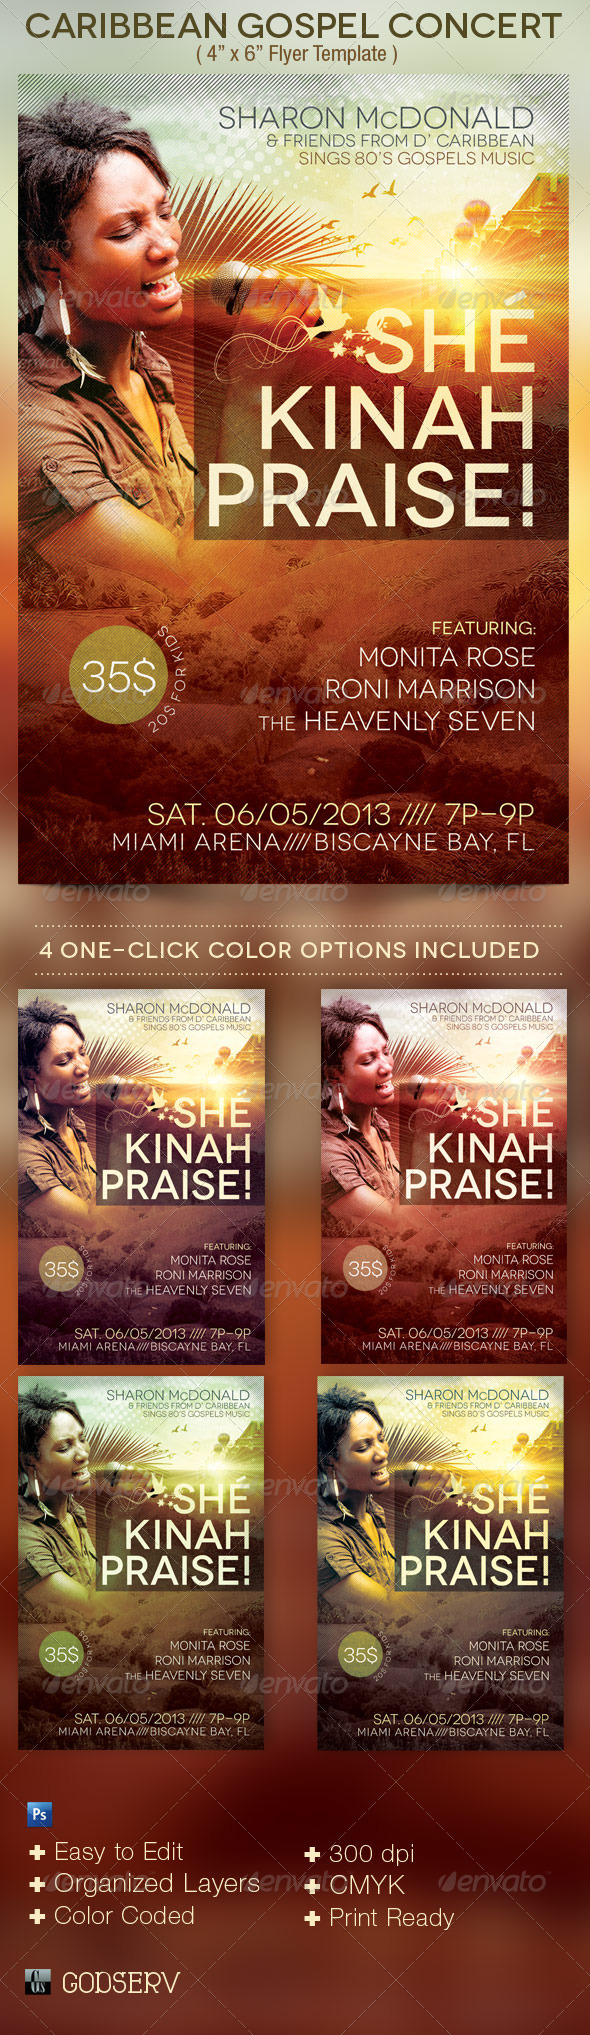 Caribbean Gospel Concert Flyer Template - Church Flyers